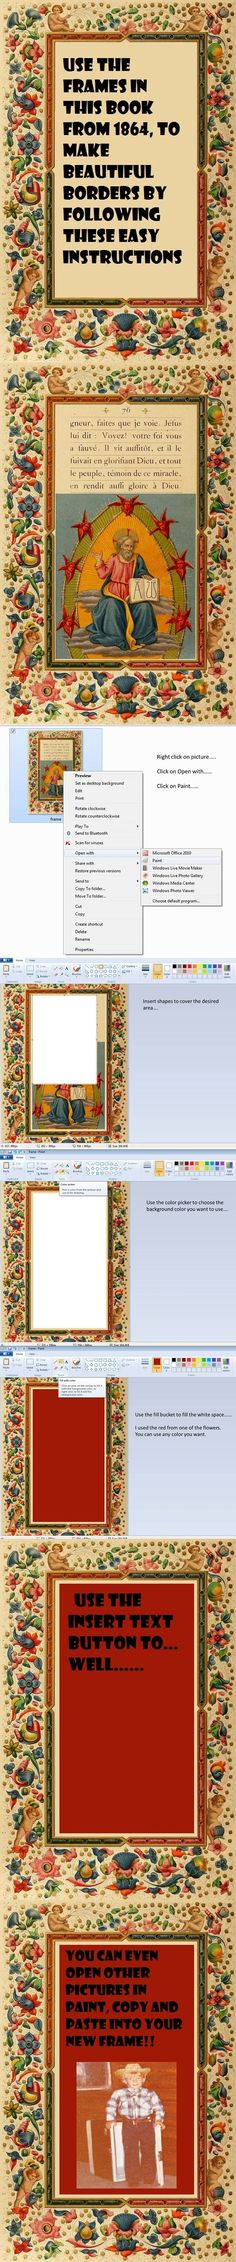 Tutorial to use Microsoft Paint and vintage books to make beautiful borders for your work! Go to the website to find more borders in the book from 1884!